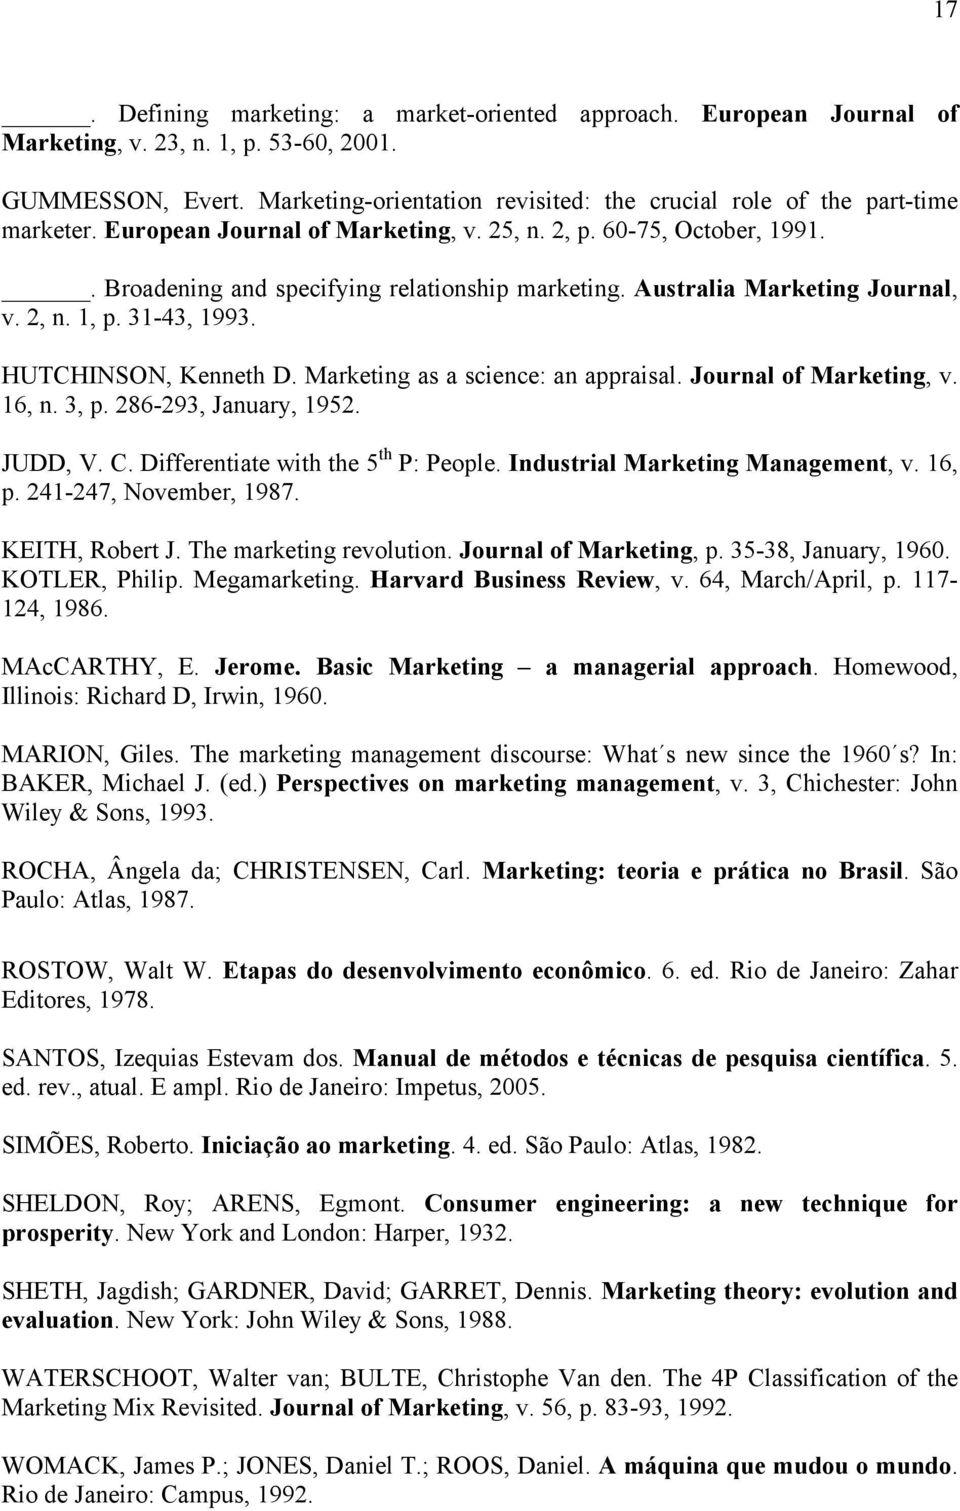 Australia Marketing Journal, v. 2, n. 1, p. 31-43, 1993. HUTCHINSON, Kenneth D. Marketing as a science: an appraisal. Journal of Marketing, v. 16, n. 3, p. 286-293, January, 1952. JUDD, V. C.